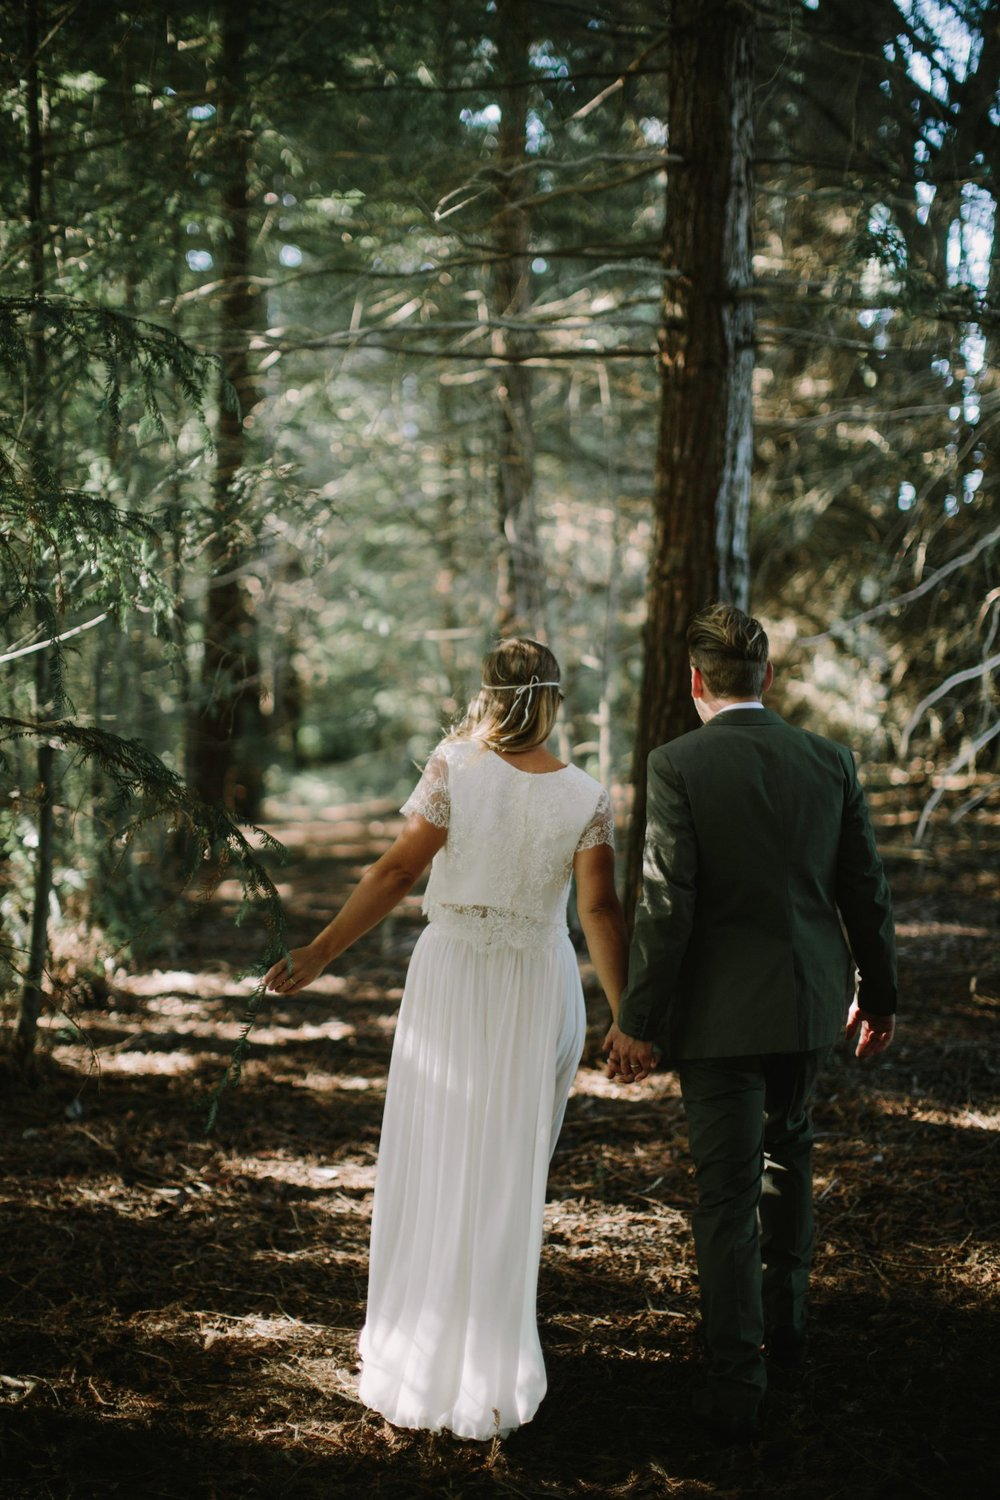 I-Got-You-Babe-Weddings-Hawkes-Bay-NZ-Wedding-Aleisha-Rolly142.jpg